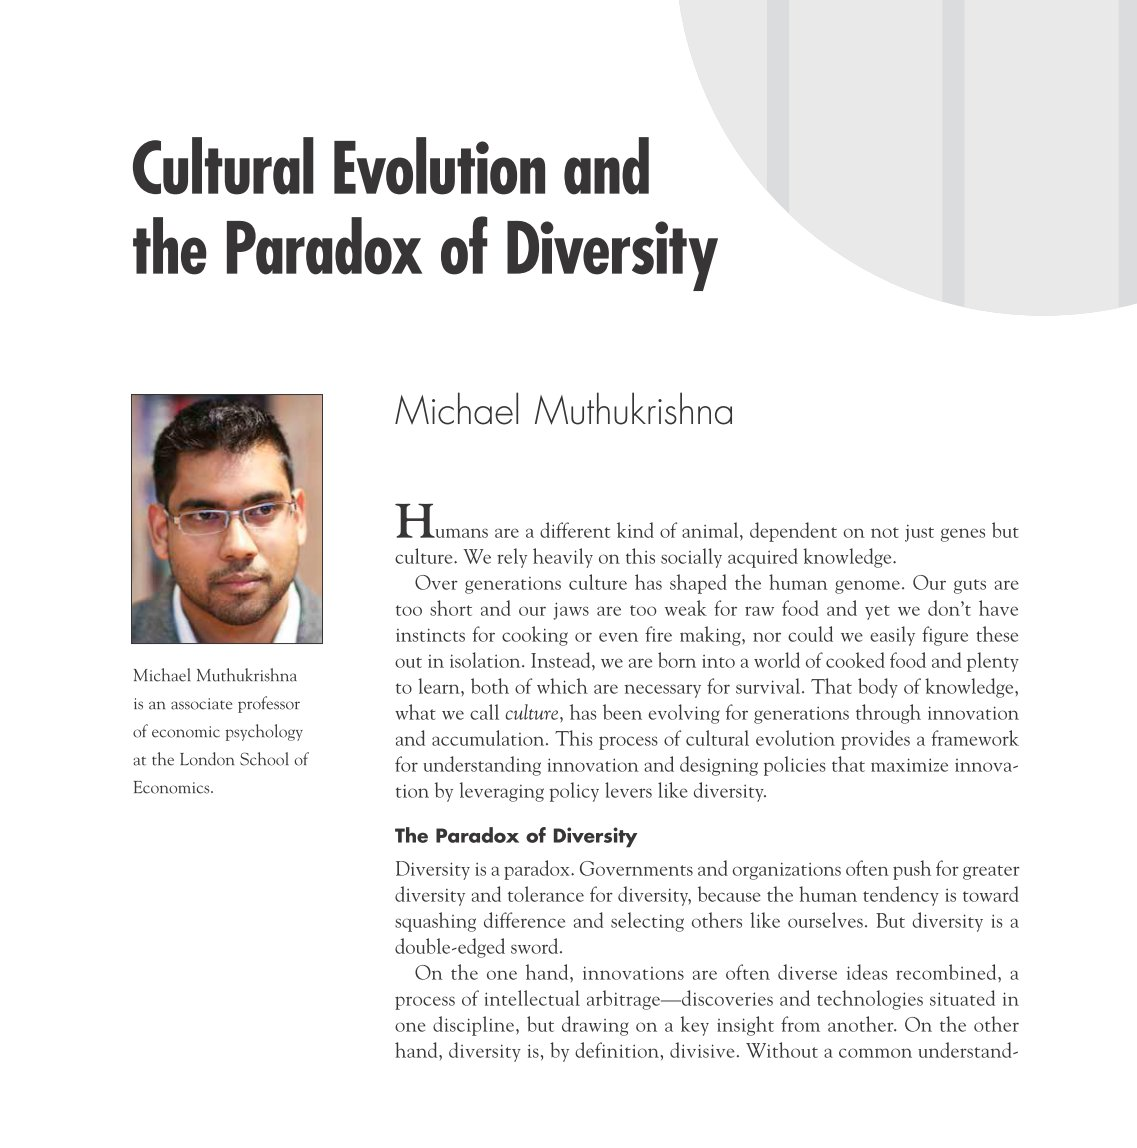 Cultural evolution and the paradox of diversity